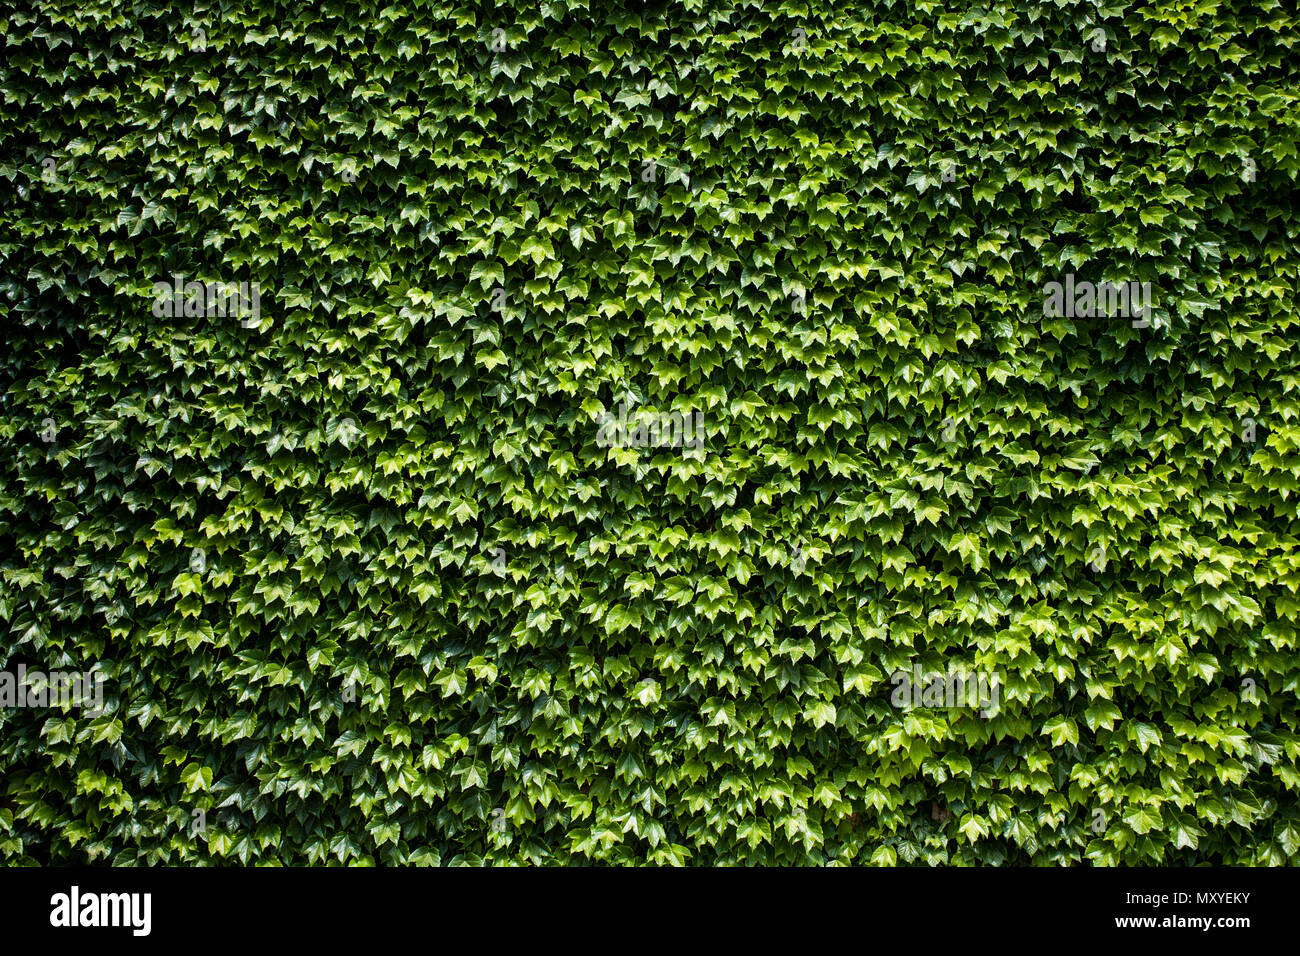 Bush Seamless Texture Background Stock Photos & Bush ...